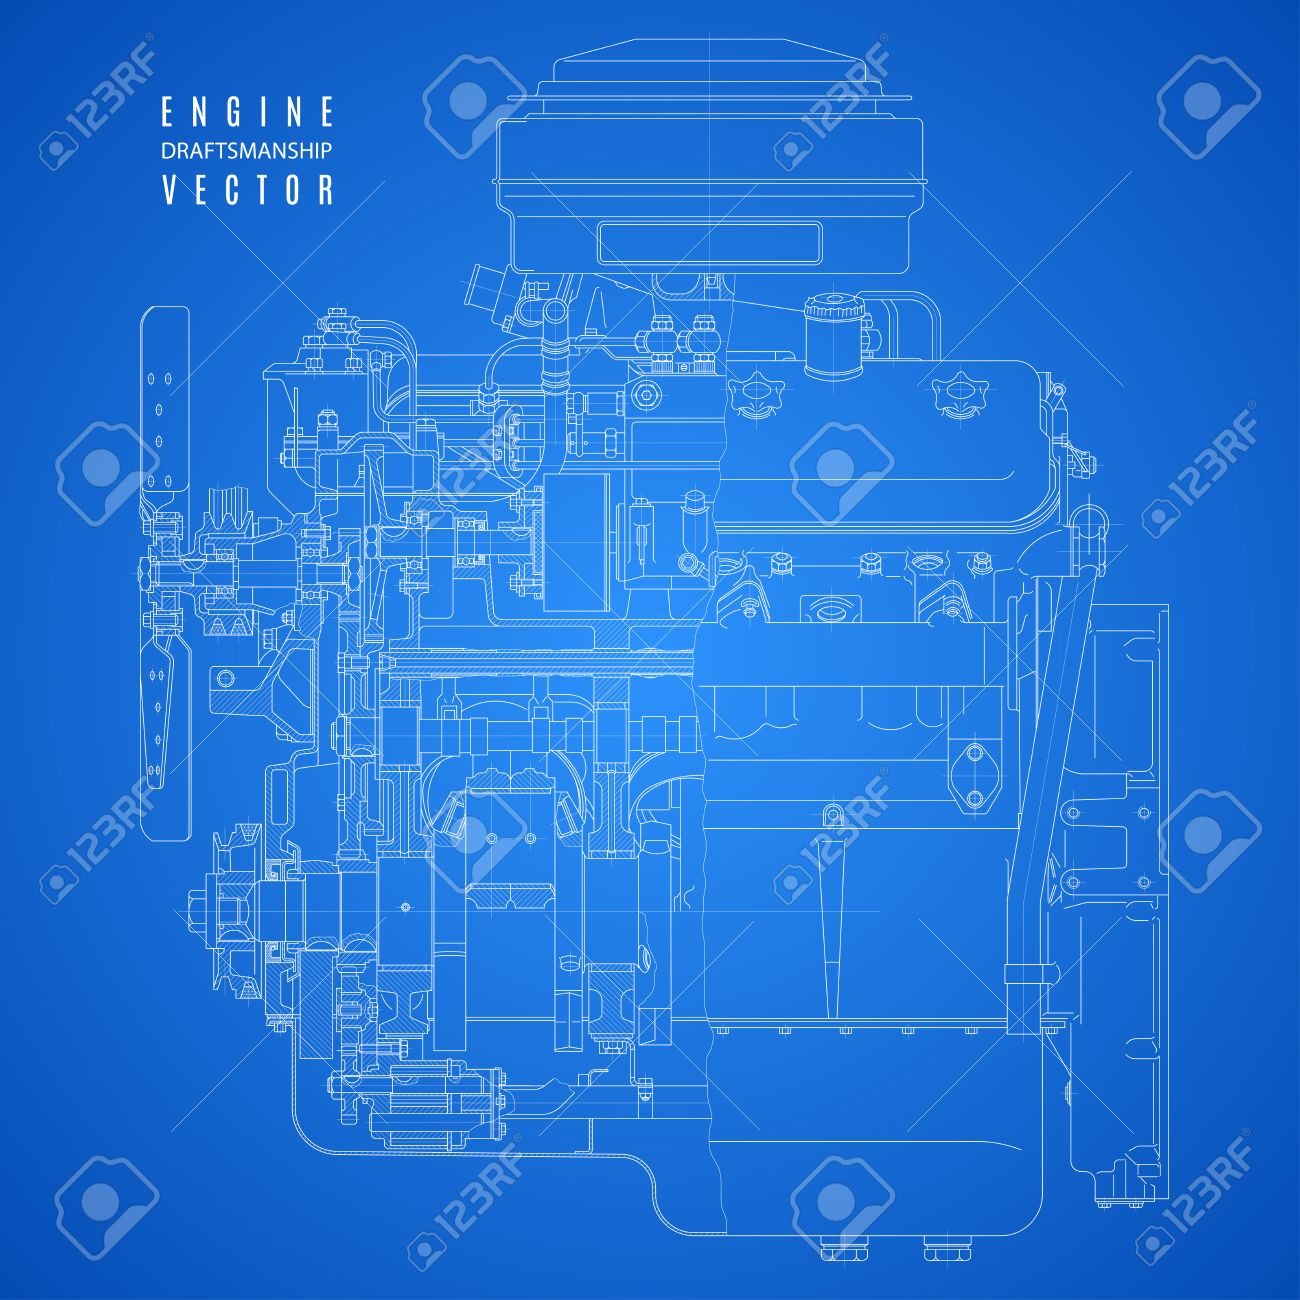 Blueprint engine diagram wiring info blueprint engine project technical drawing on the blue background rh 123rf com semi engine diagram 08 malvernweather Images